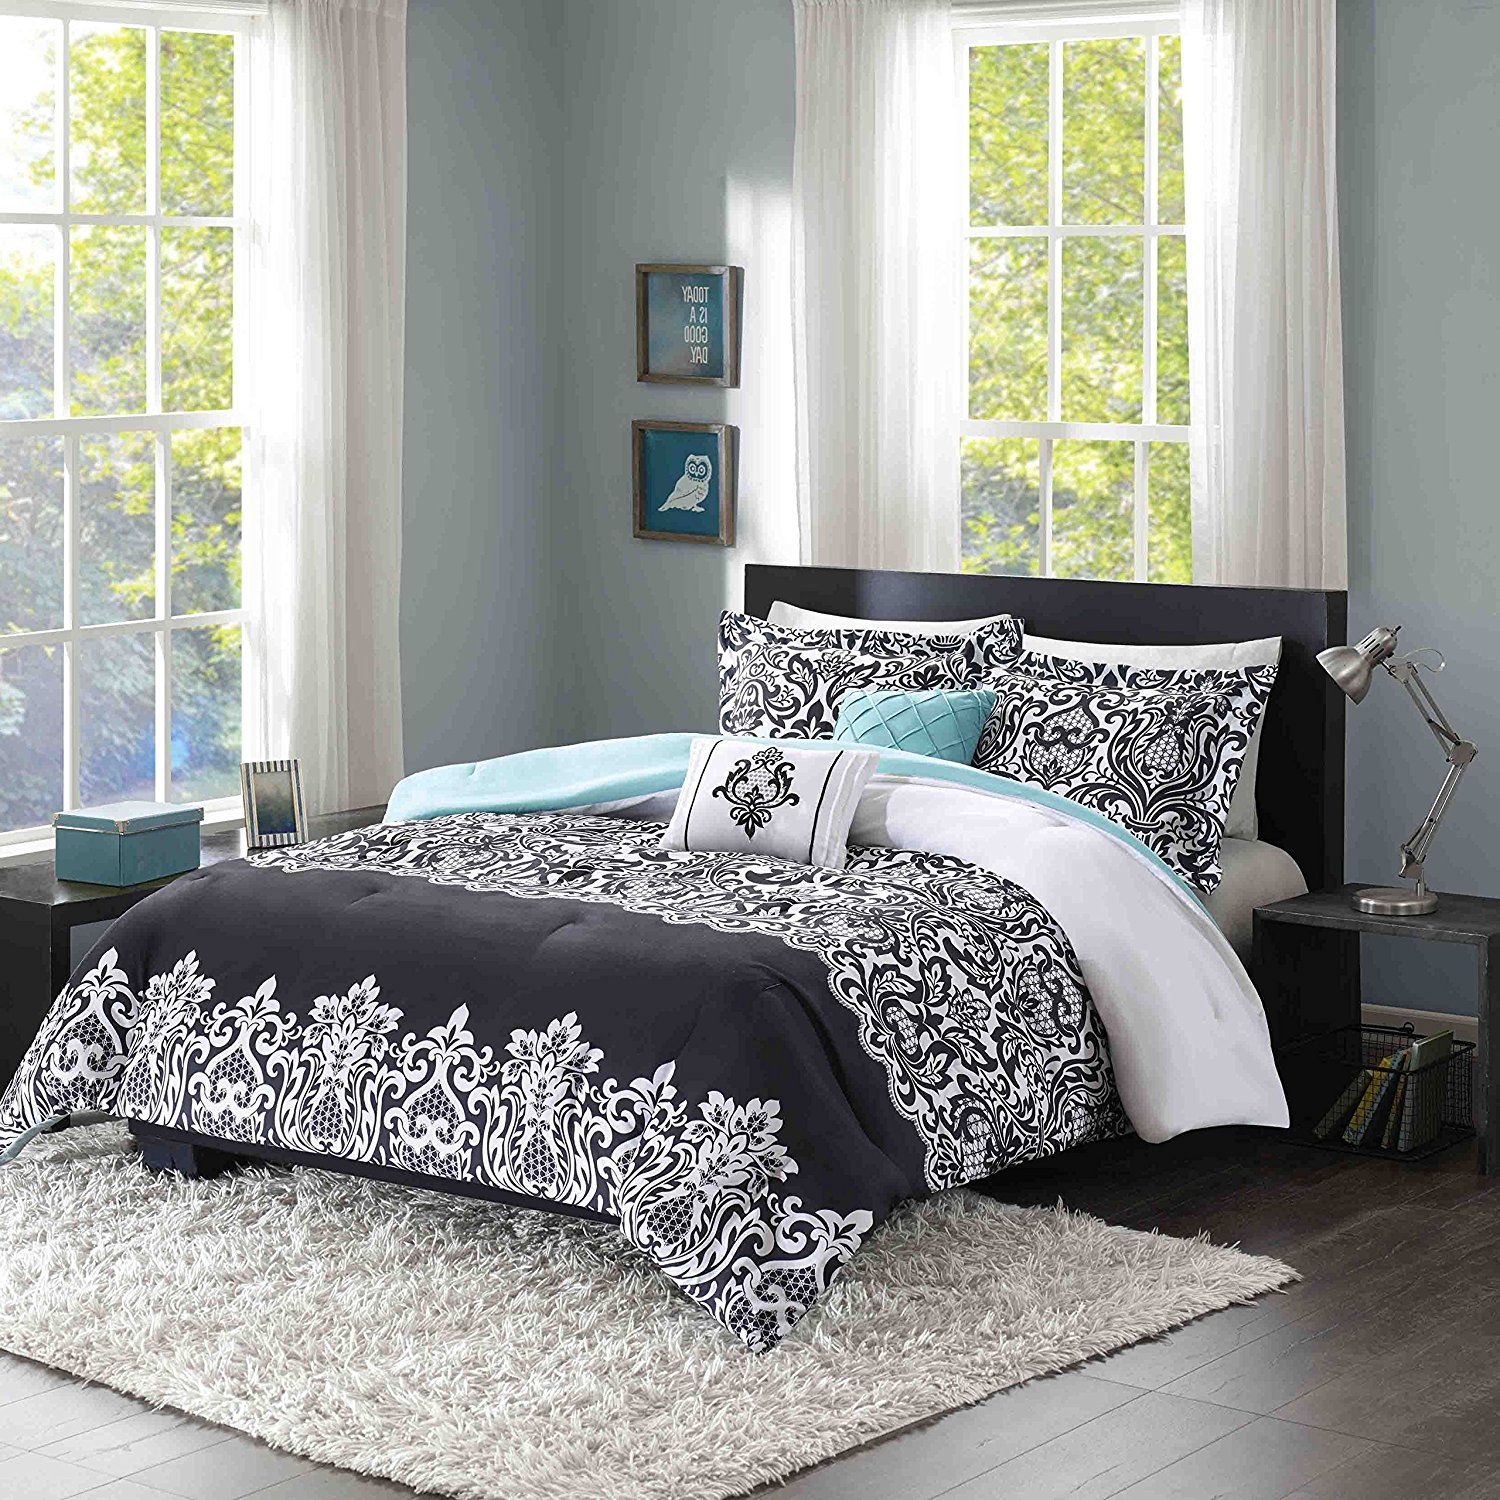 LO 5 Piece Girls Black White Damask Jeweled Comforter Set Full Queen, Dark Black Geometric Printed Floral Adult Bedding Master Bedroom Reversible Solid Color Casual Modern, Polyester